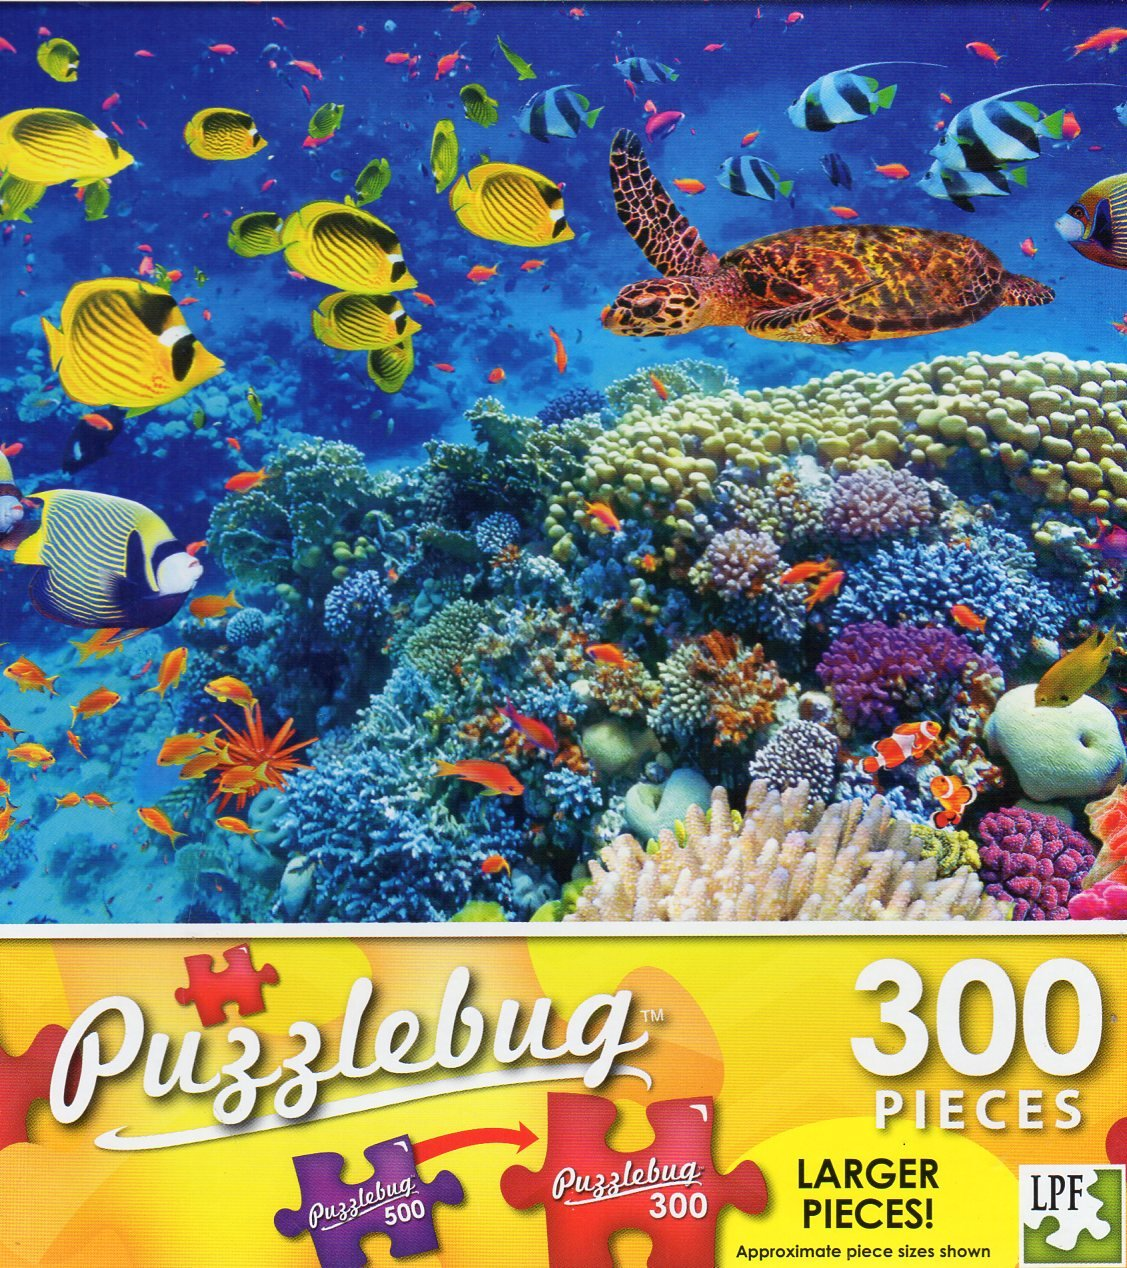 Tropical Fish and Turtle in the Red Sea - Puzzlebug 300 Piece Jigsaw Puzzle